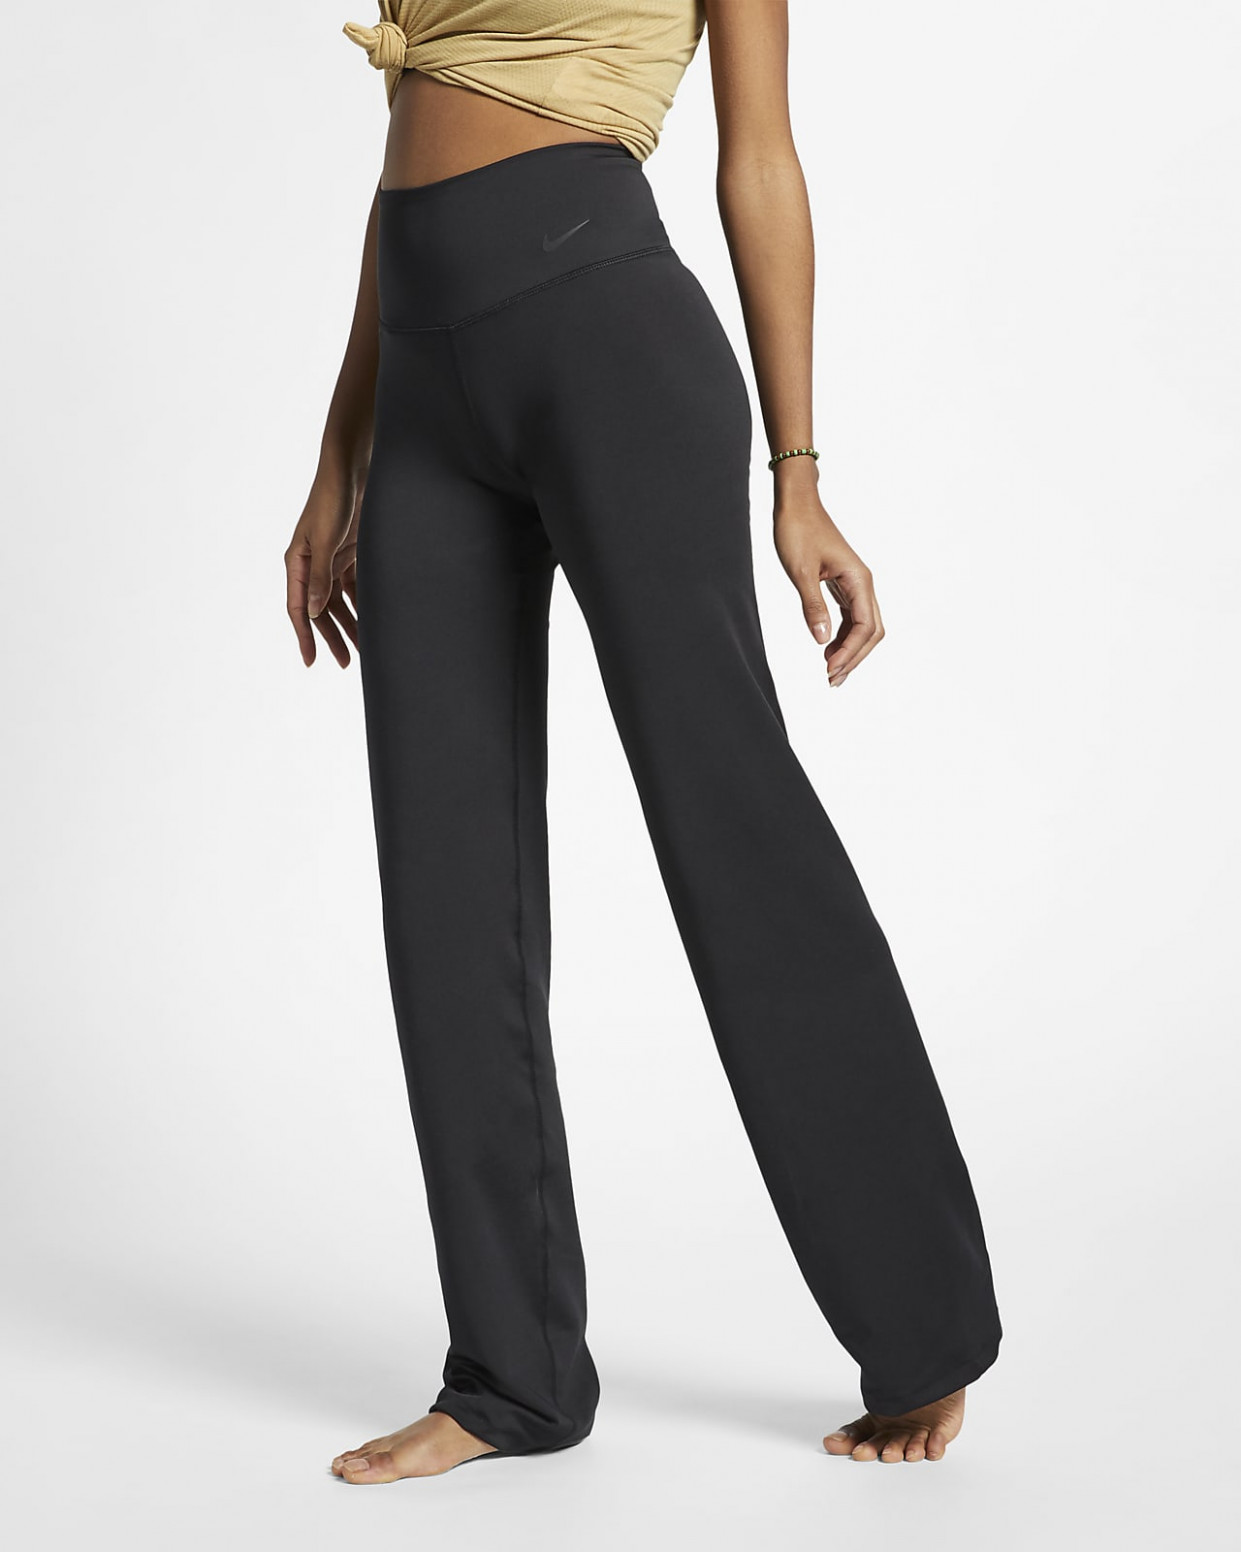 nike power women's yoga training trousers yoga hosen | Yoga Hosen